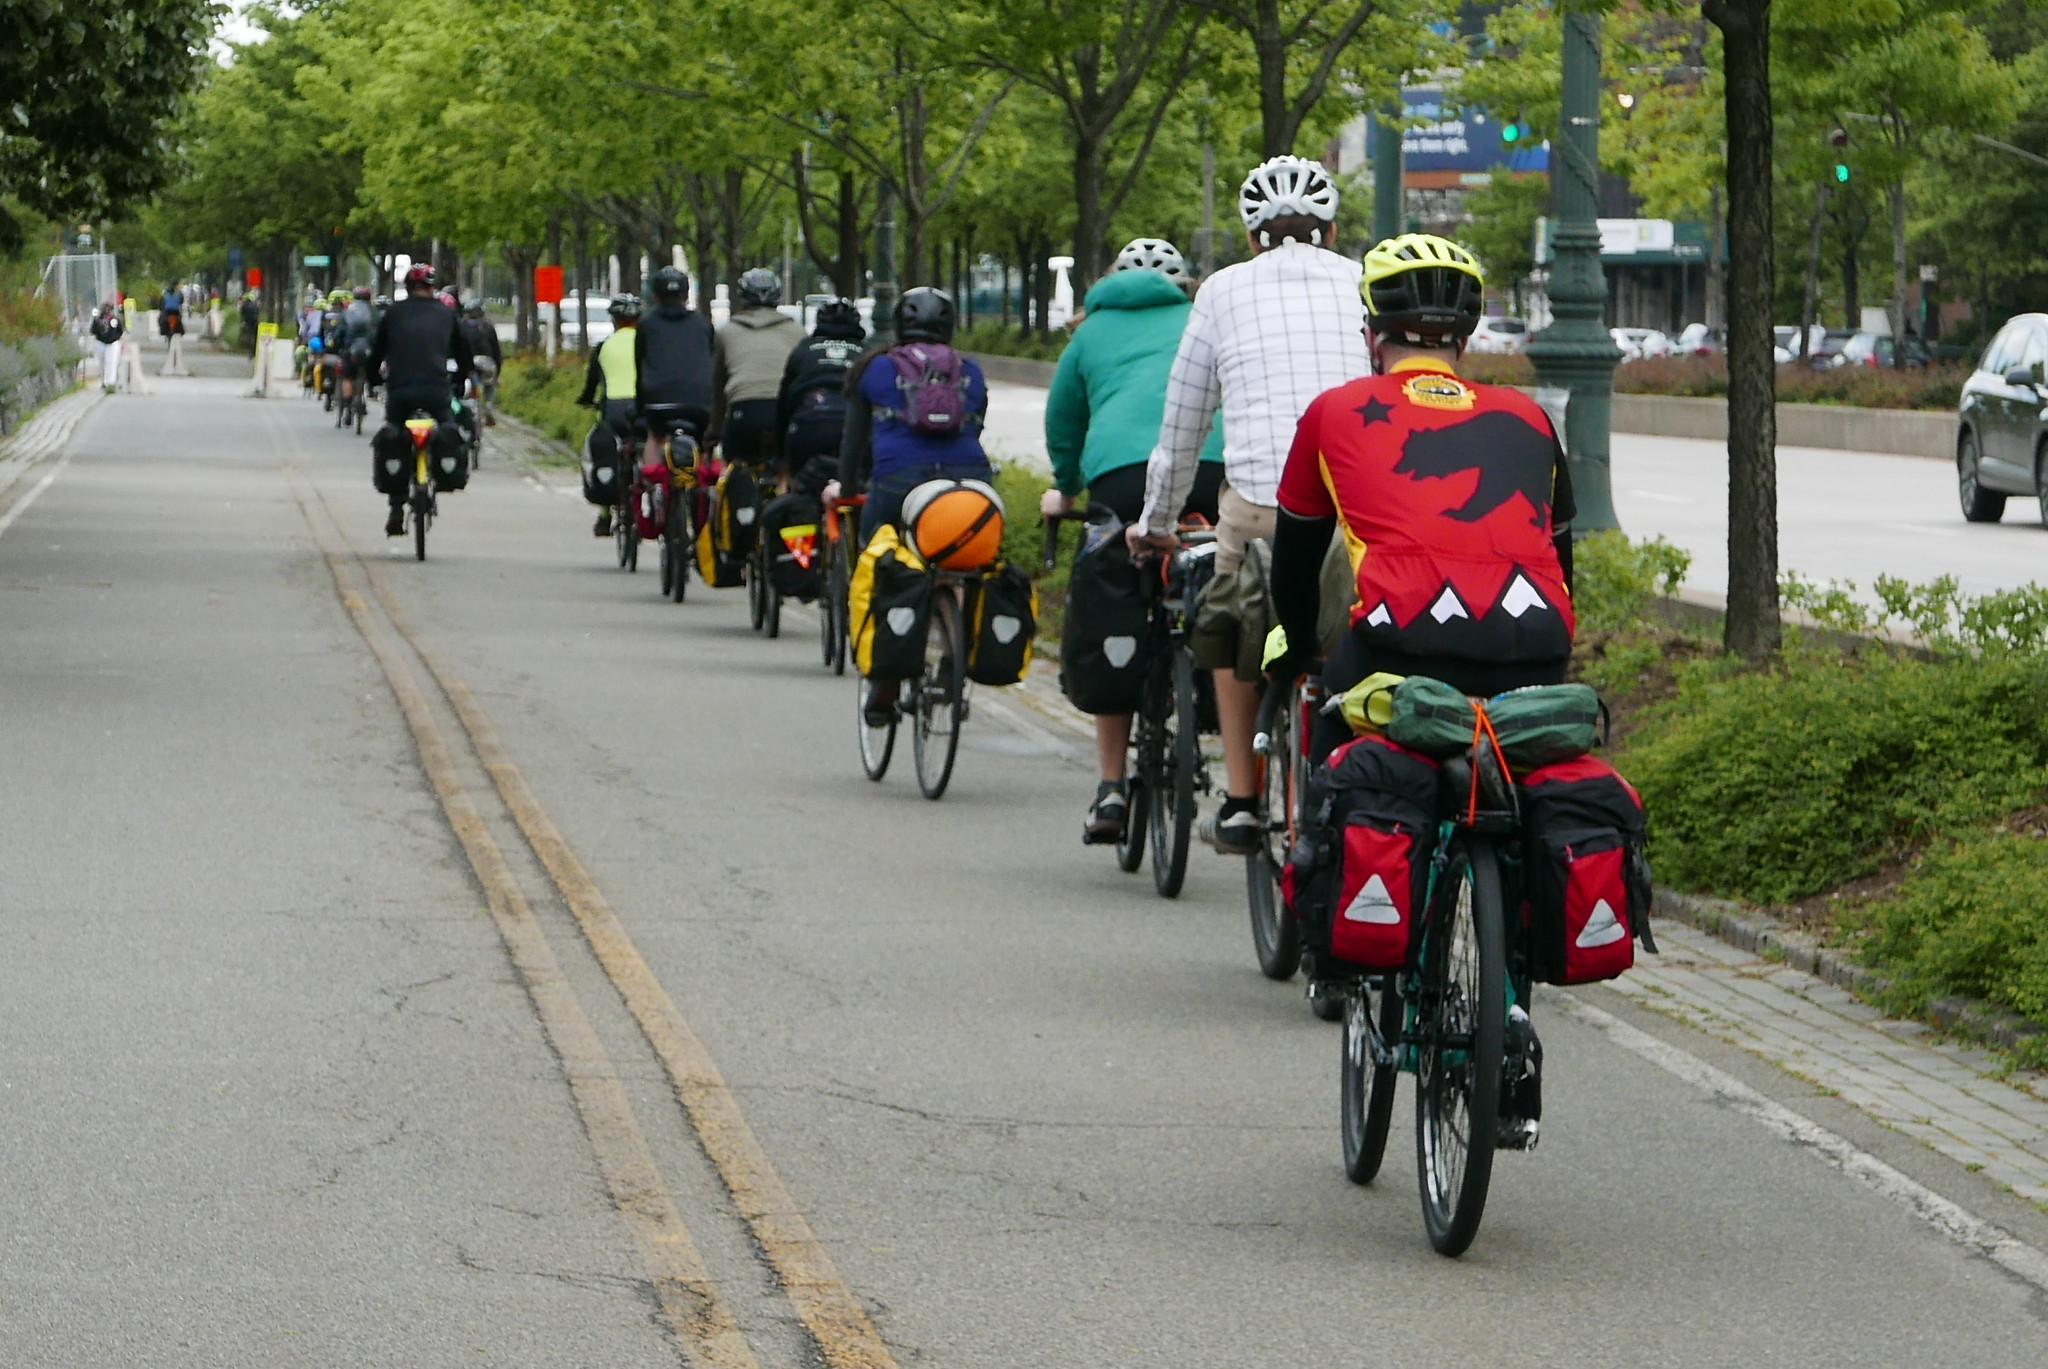 The group headed north on Manhattan's Hudson River Greenway